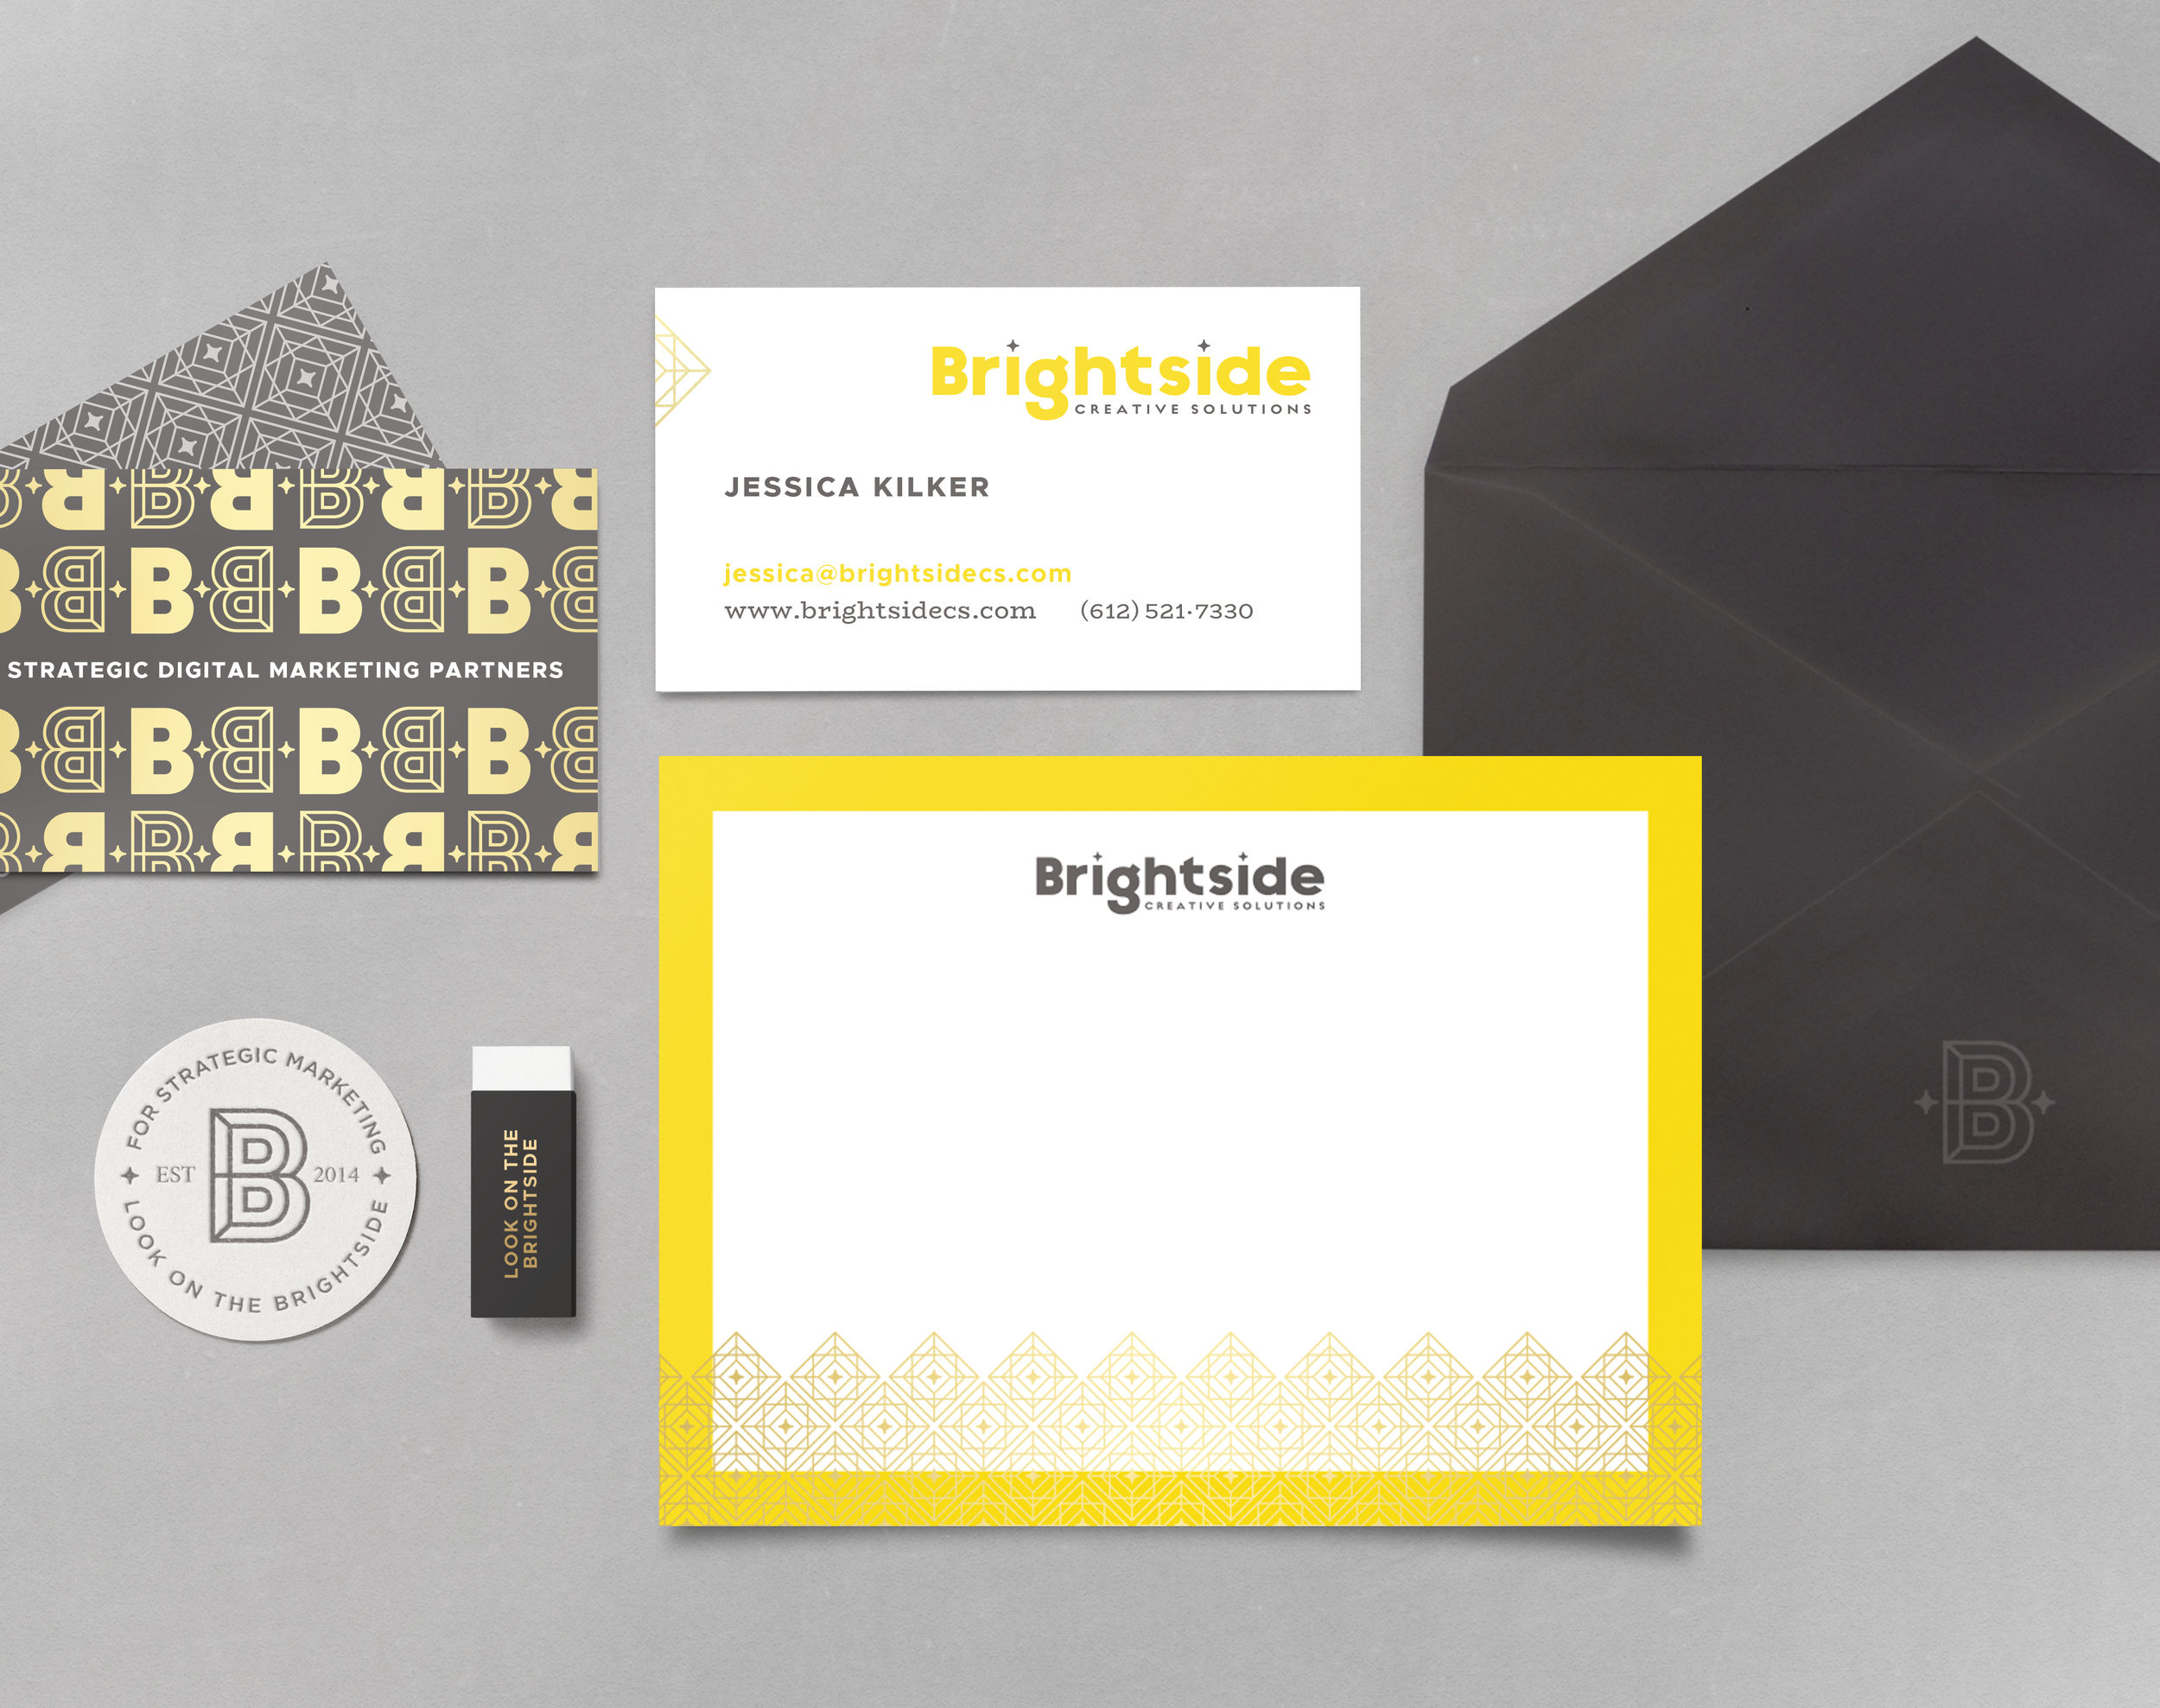 Brightside Creative Solutions brand stationery design by Pace Creative Design Studio